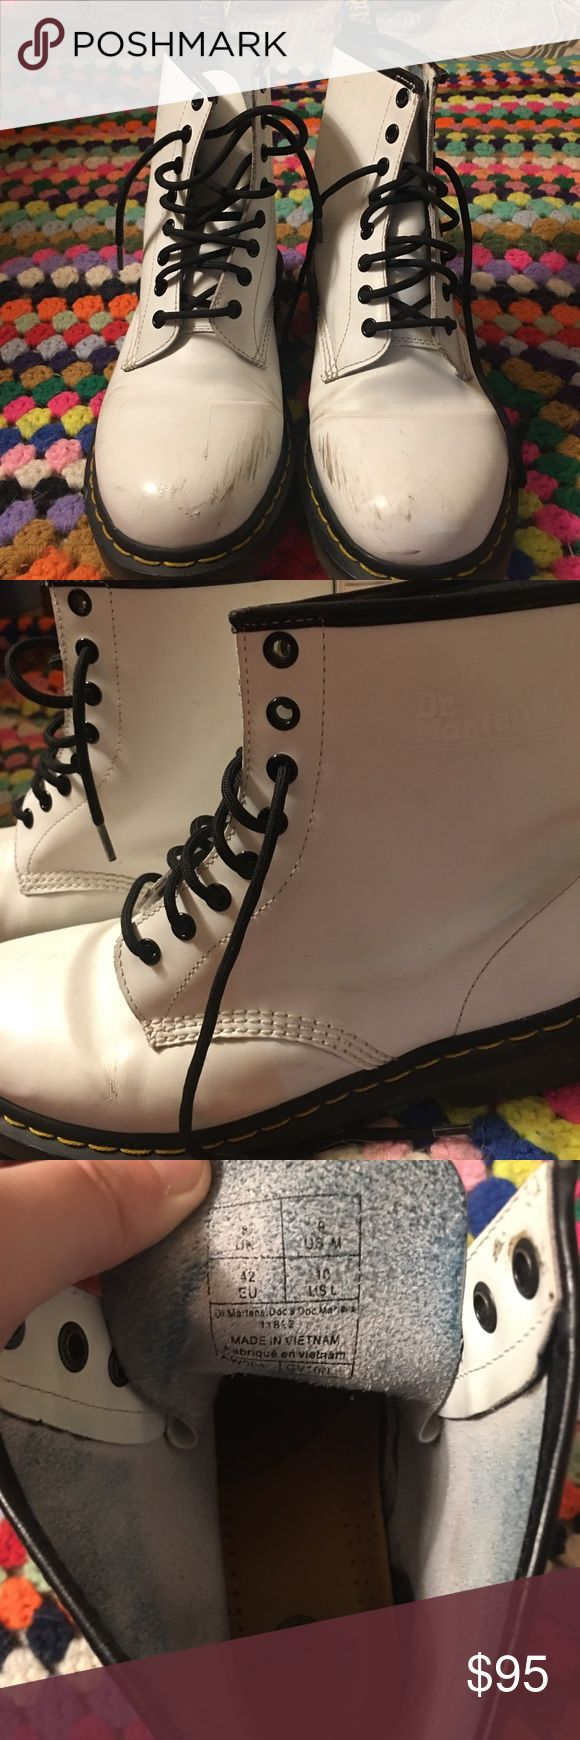 WHITE MATTE LEATHER DOC MARTENS BOOTS •Reason for selling: I love docs so much but I can't pull off the white and i just got tired of trying to break them in haha. •Condition: They were worn twice, once for hiking which is why there's scuff marks. •Material: Real matte leather. Sizing: 9 in men's, 8 UK, 42 EU, 10 US. •Pricing: This is the starting price, I'm willing to take offers :)  -Alina❣️ Dr. Martens Shoes Combat & Moto Boots